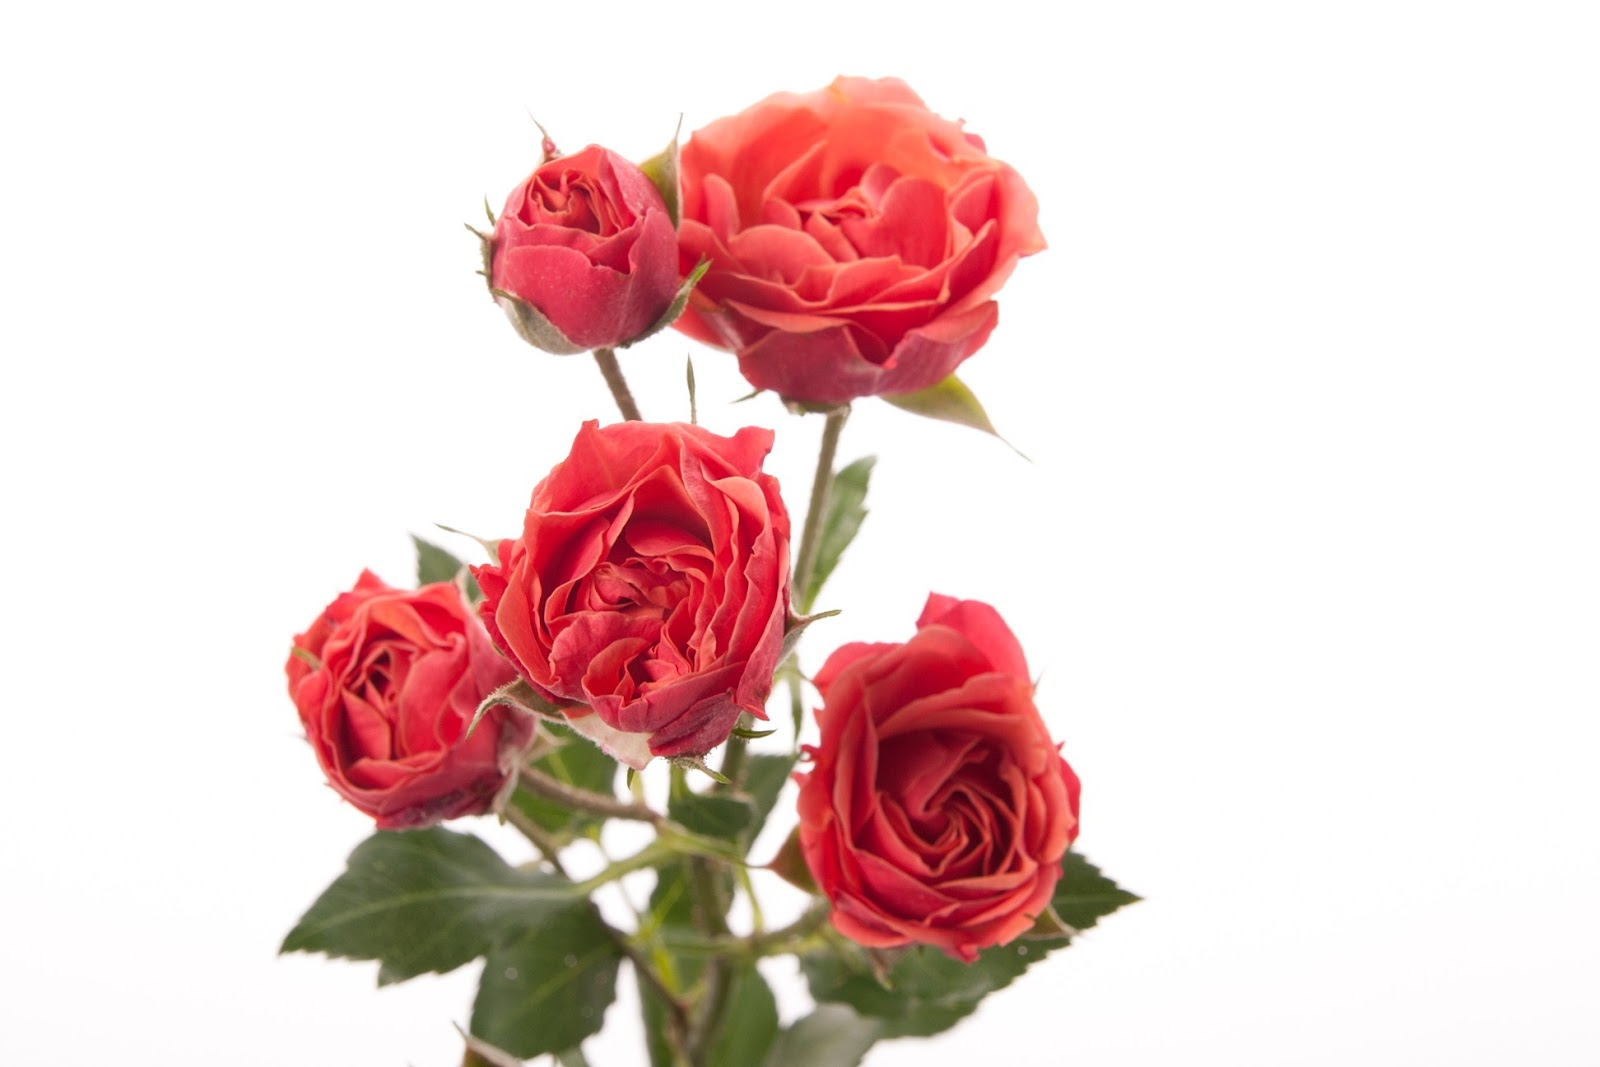 flowers for flower lovers.: Flowers wallpapers.